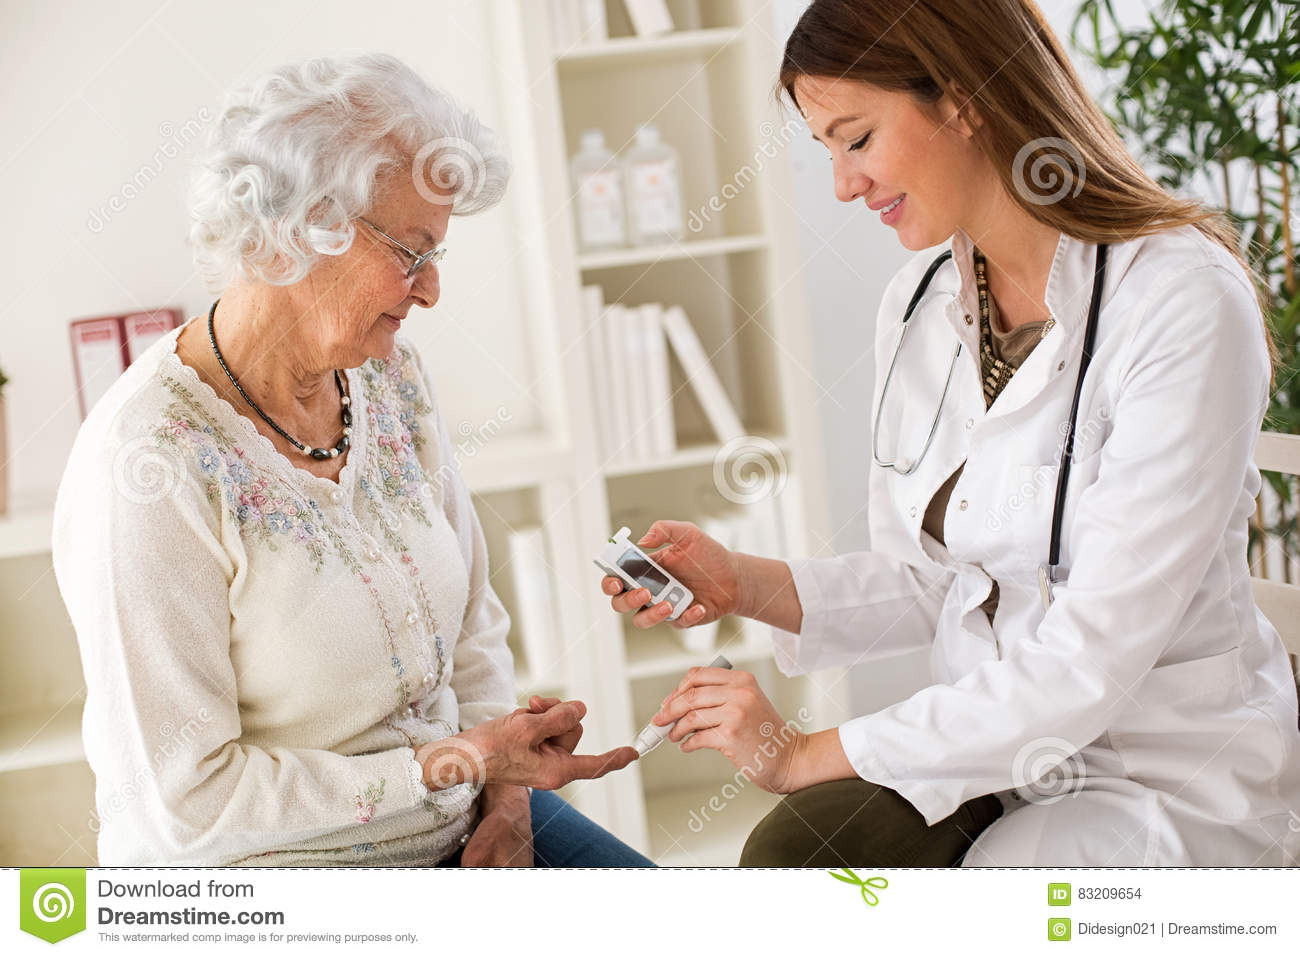 Young female doctor making diabetes blood test on senior woman